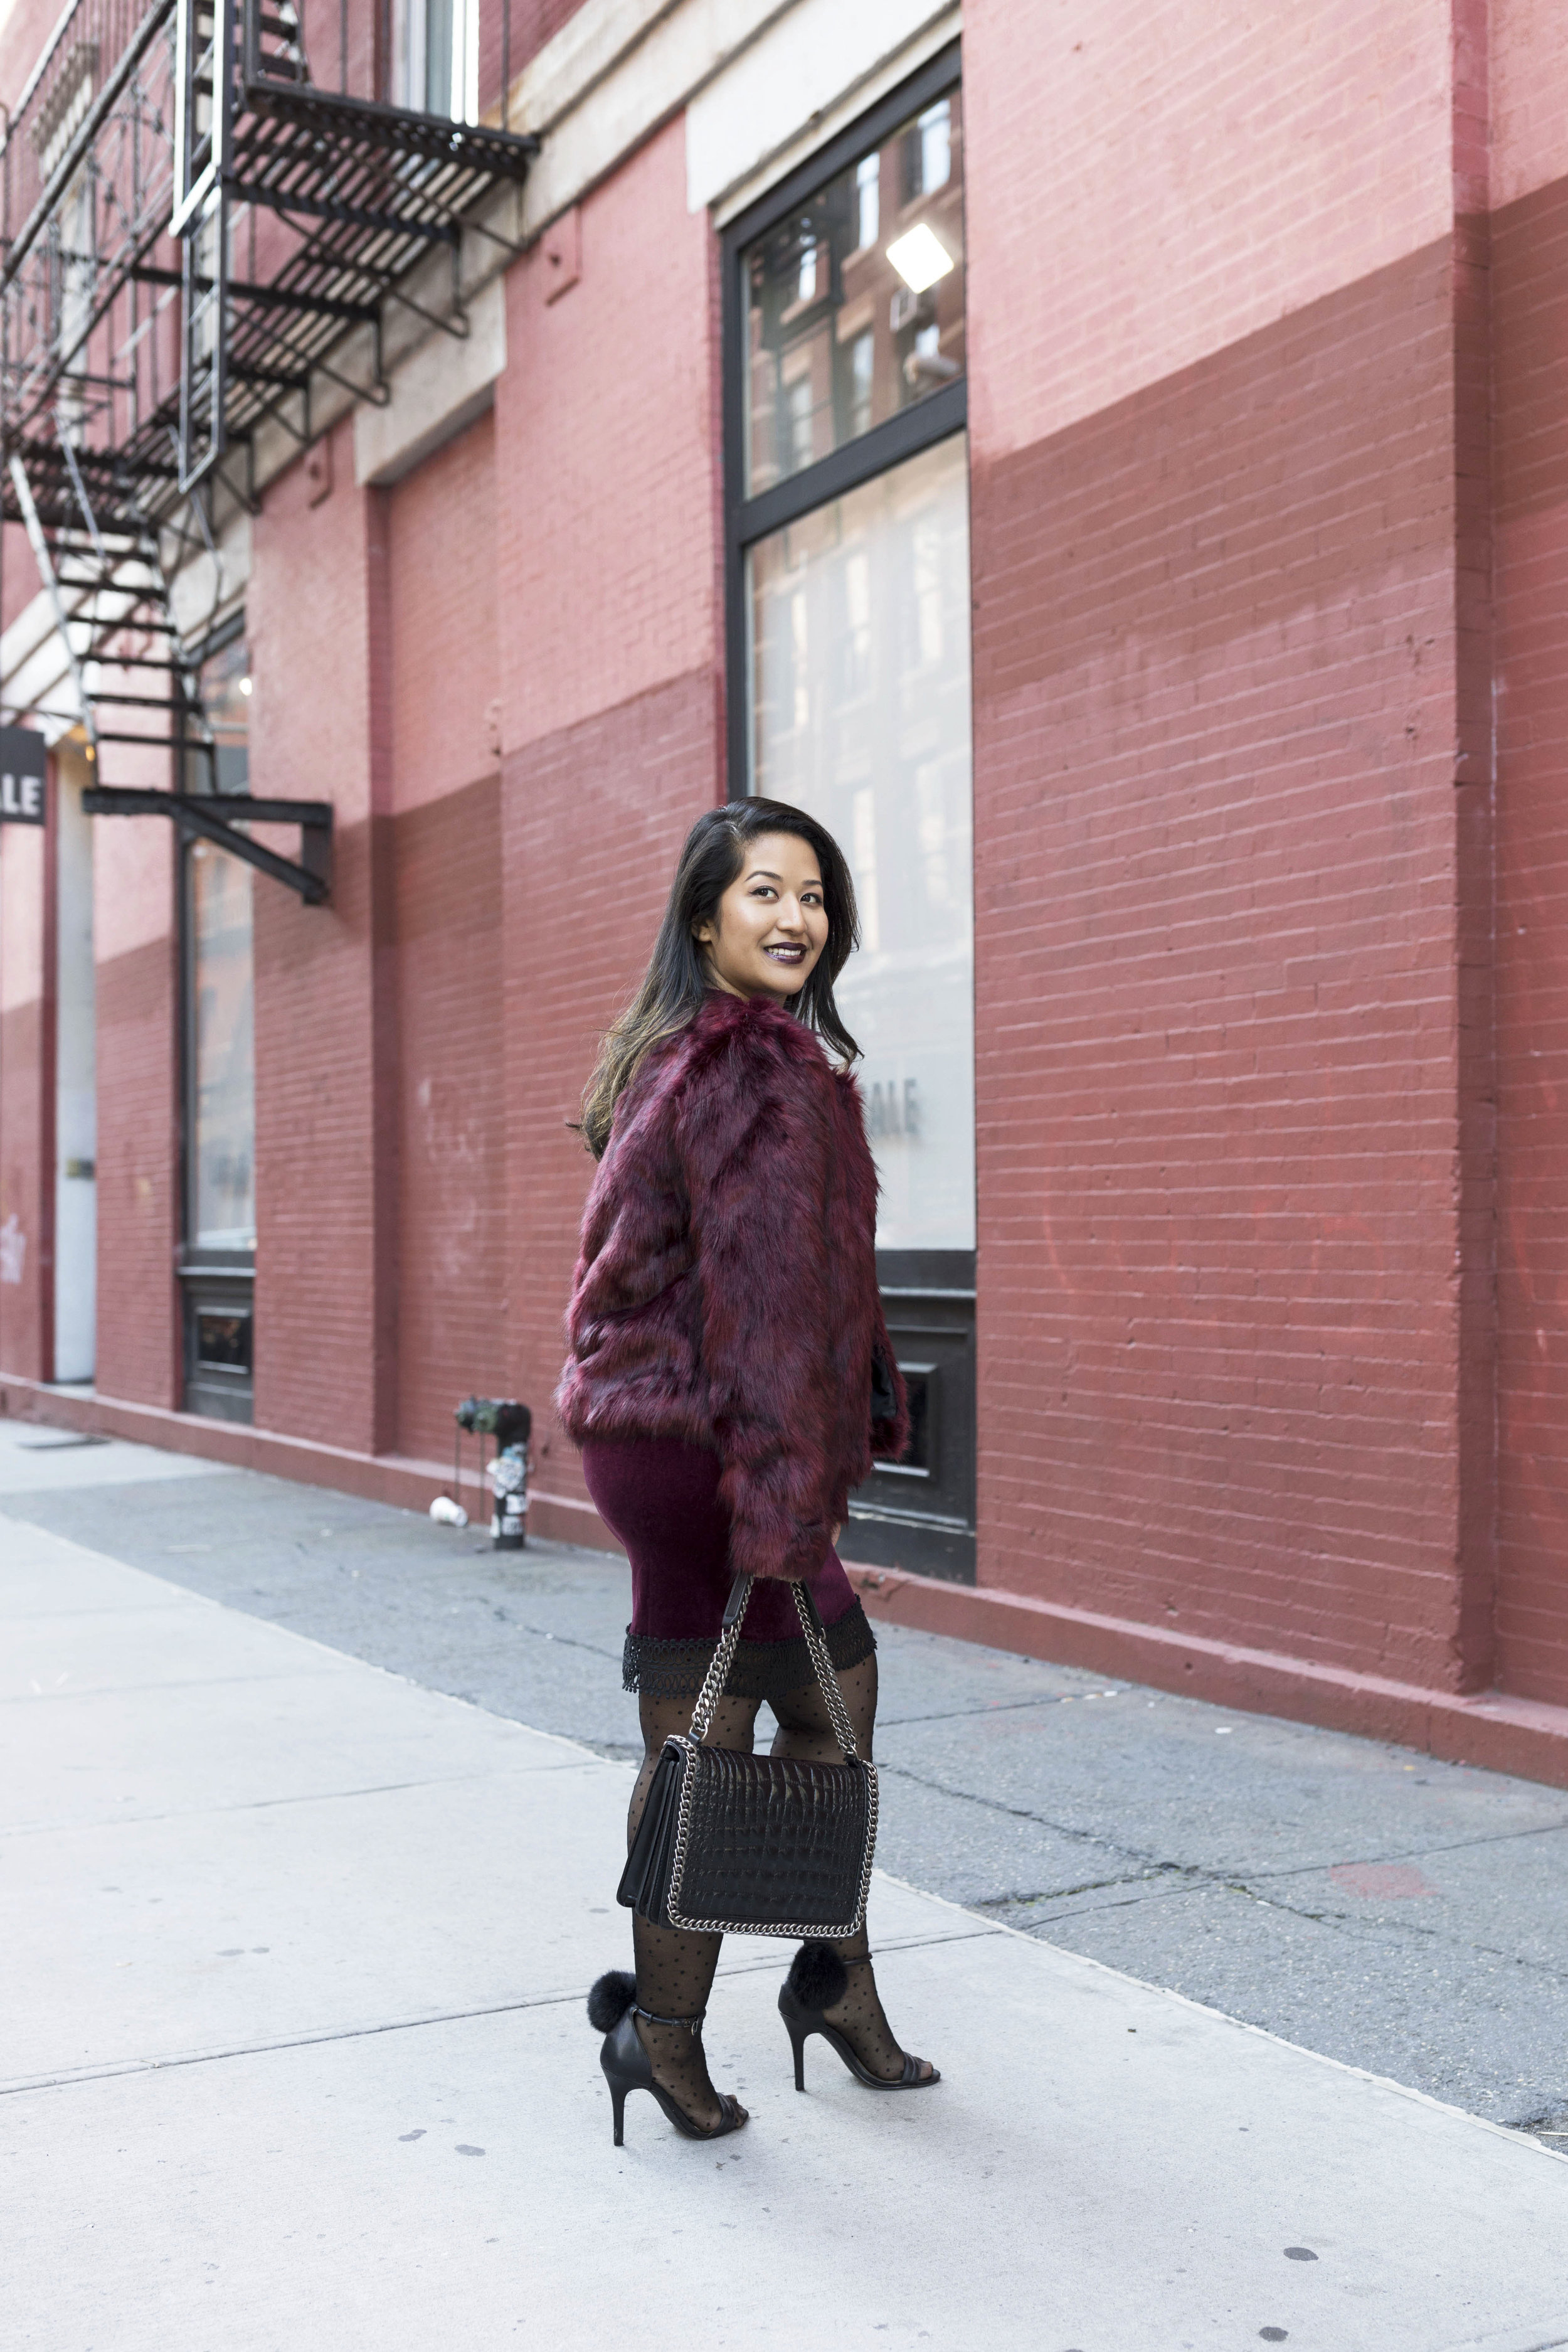 Krity S x Holiday Outfit x Century 21 Burgundy Velvet Dress and Faux Fur4.jpg